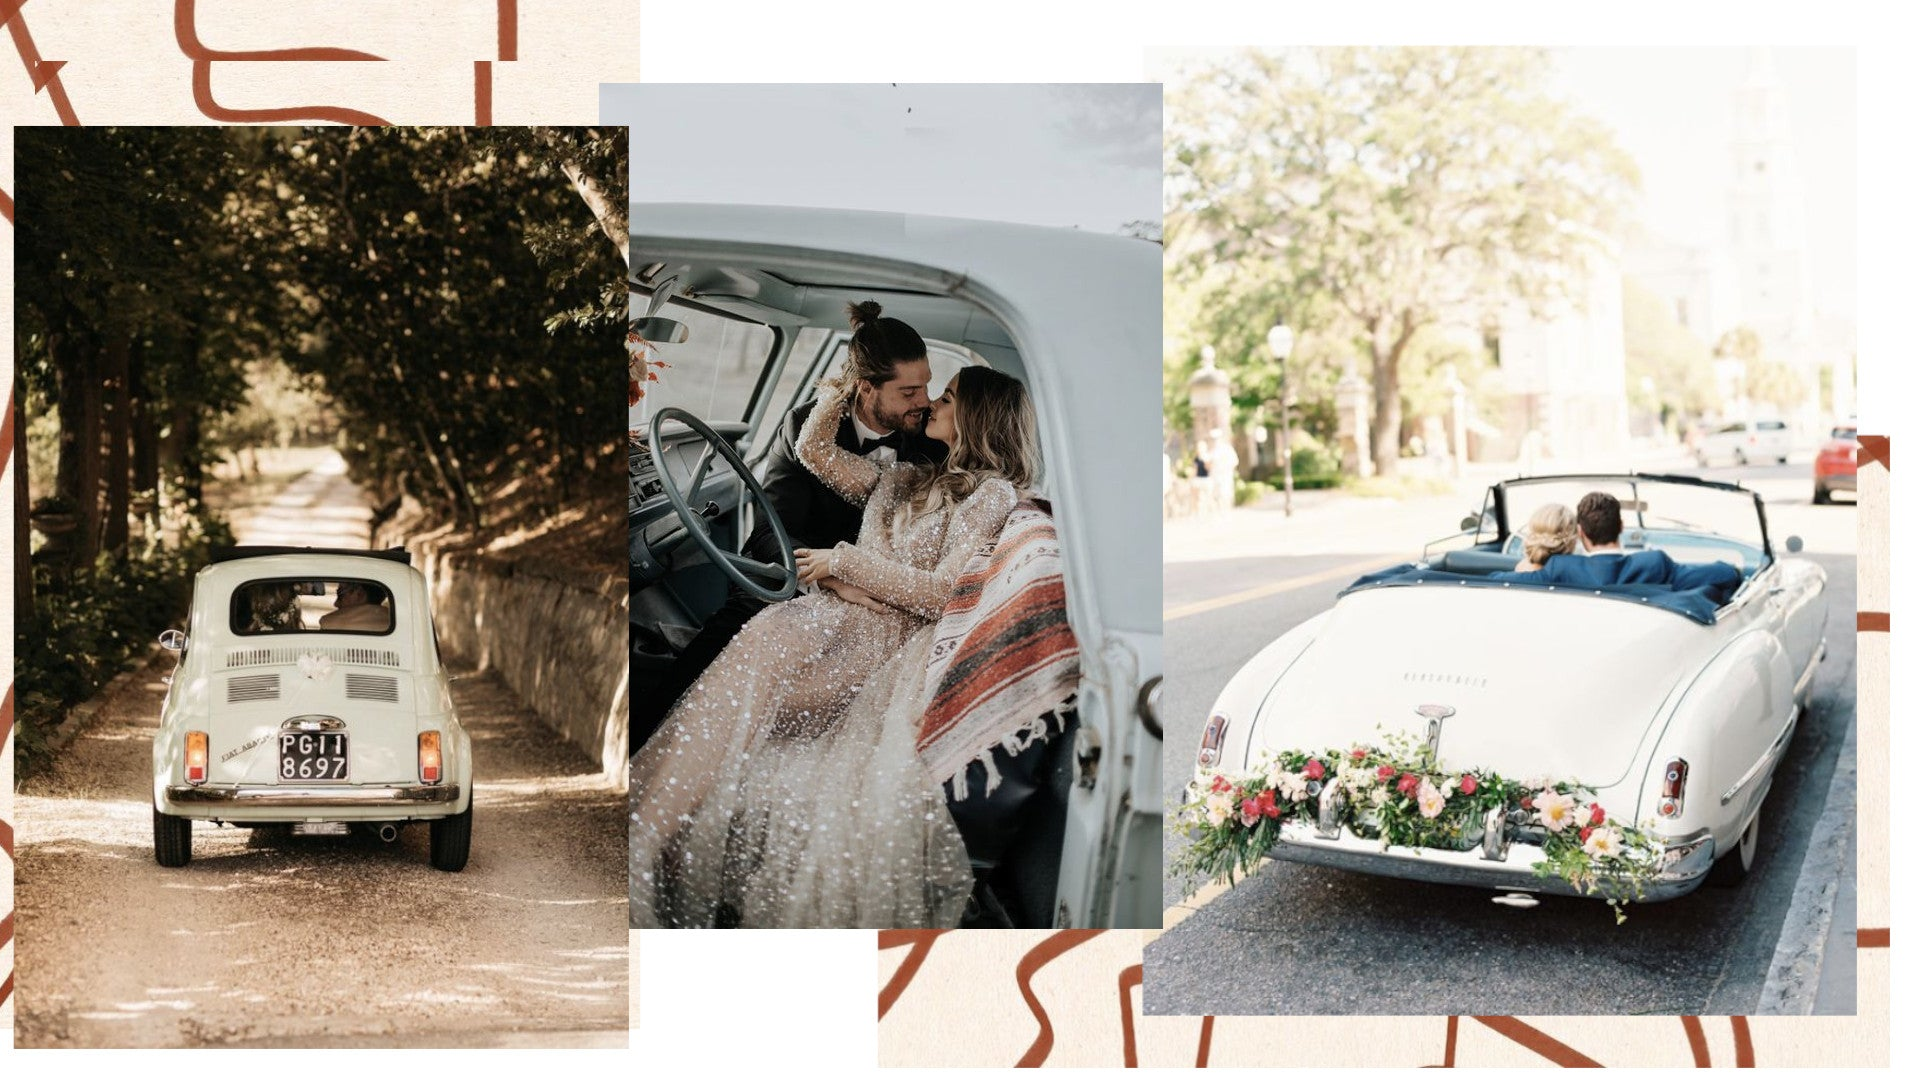 Just Married Car Rental for your wedding!